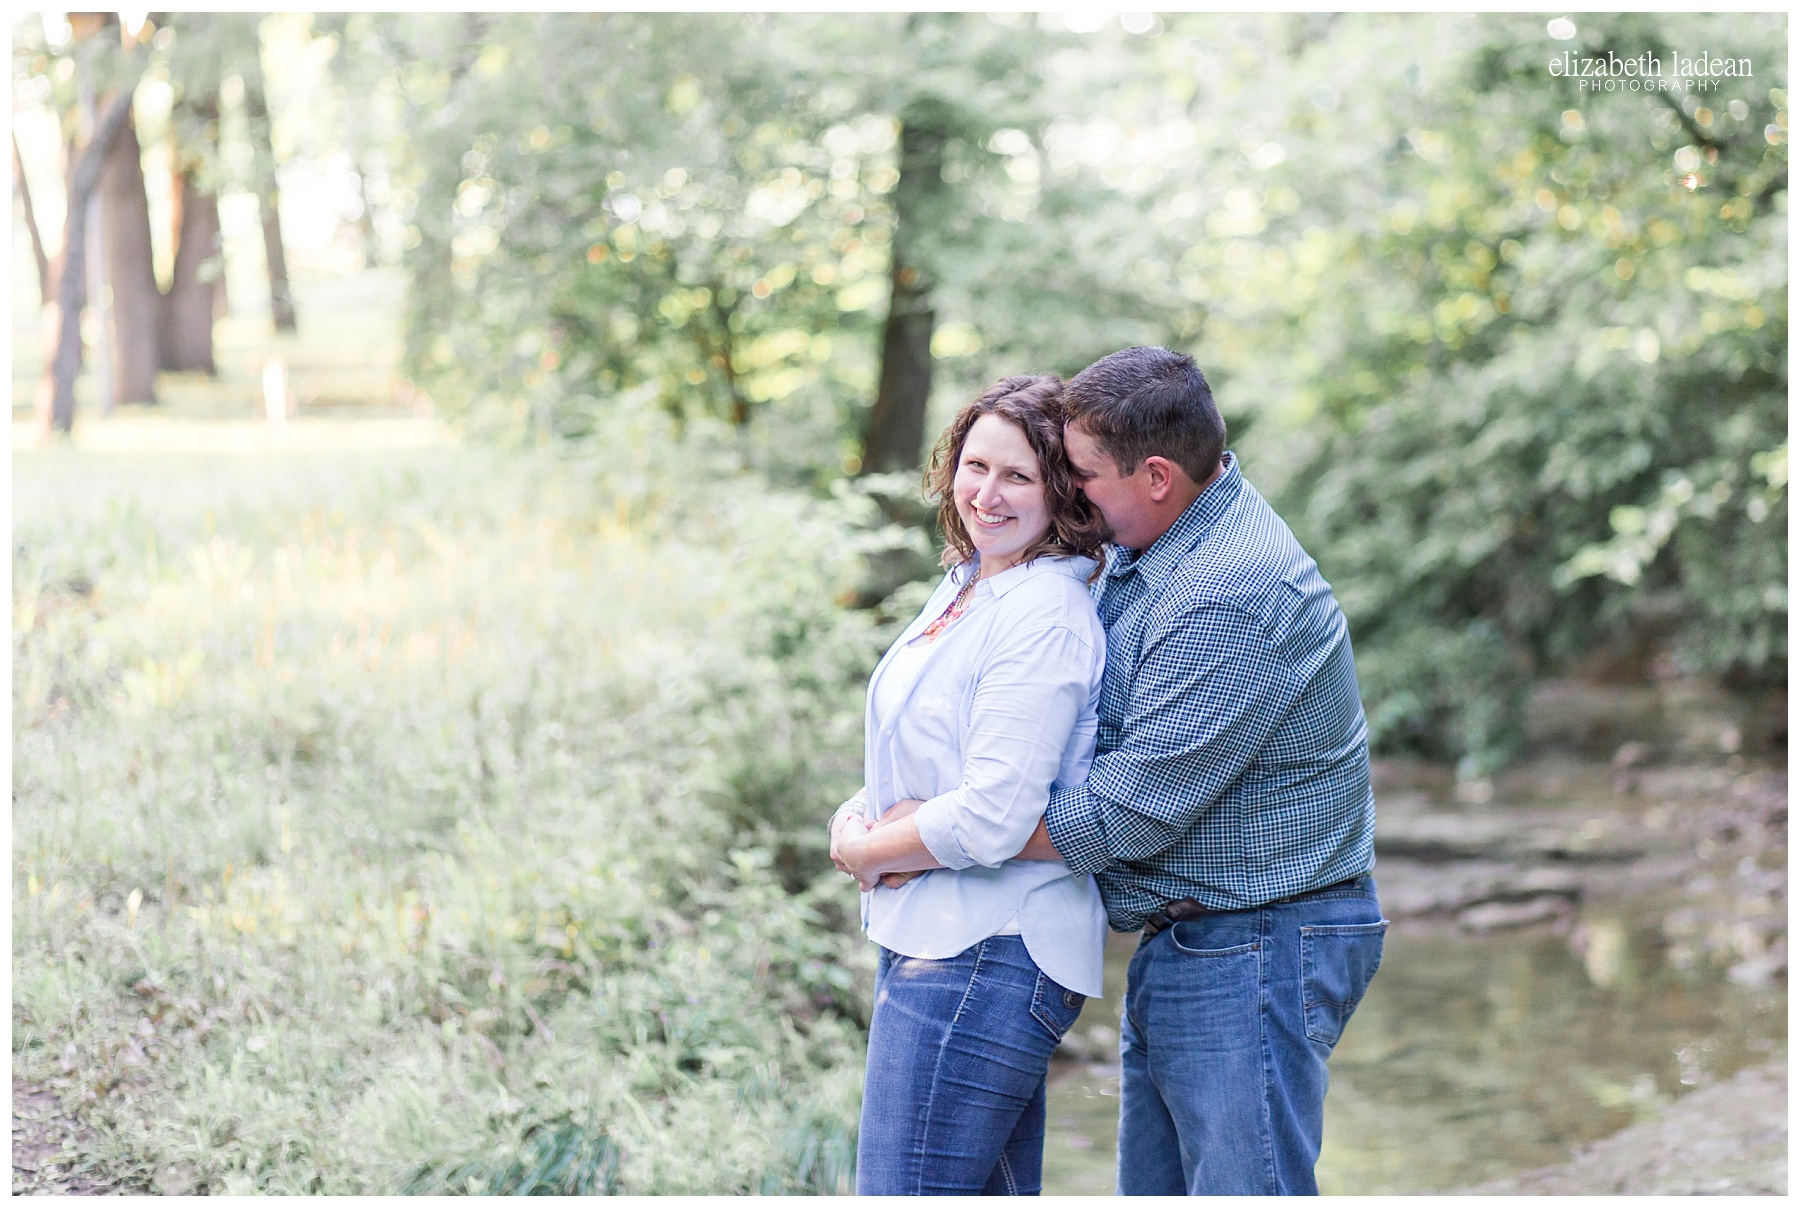 Kansas-City-Engagement-Photography-Shawnee-Mission-H+JJ2017-Elizabeth-Ladean-Photography-photo_1926.jpg